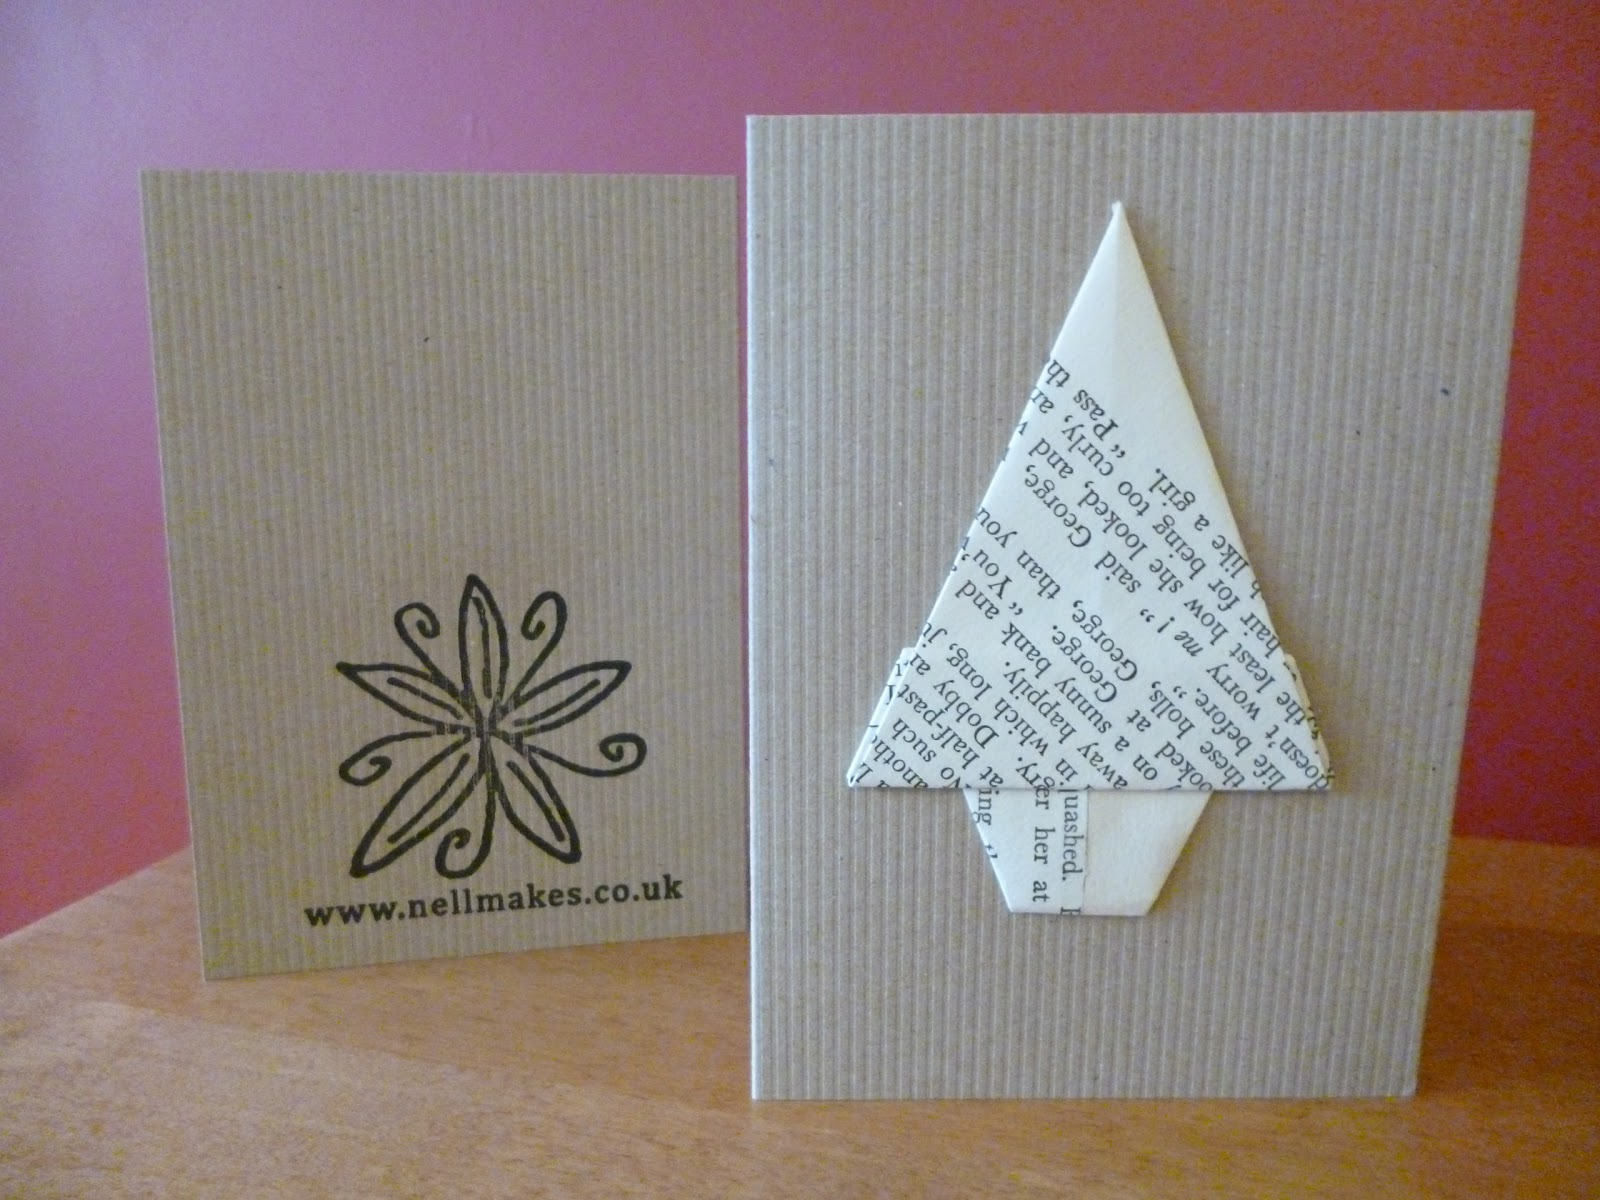 Nell Makes Handmade Christmas Cards and Giveaway | Garden, Tea ...